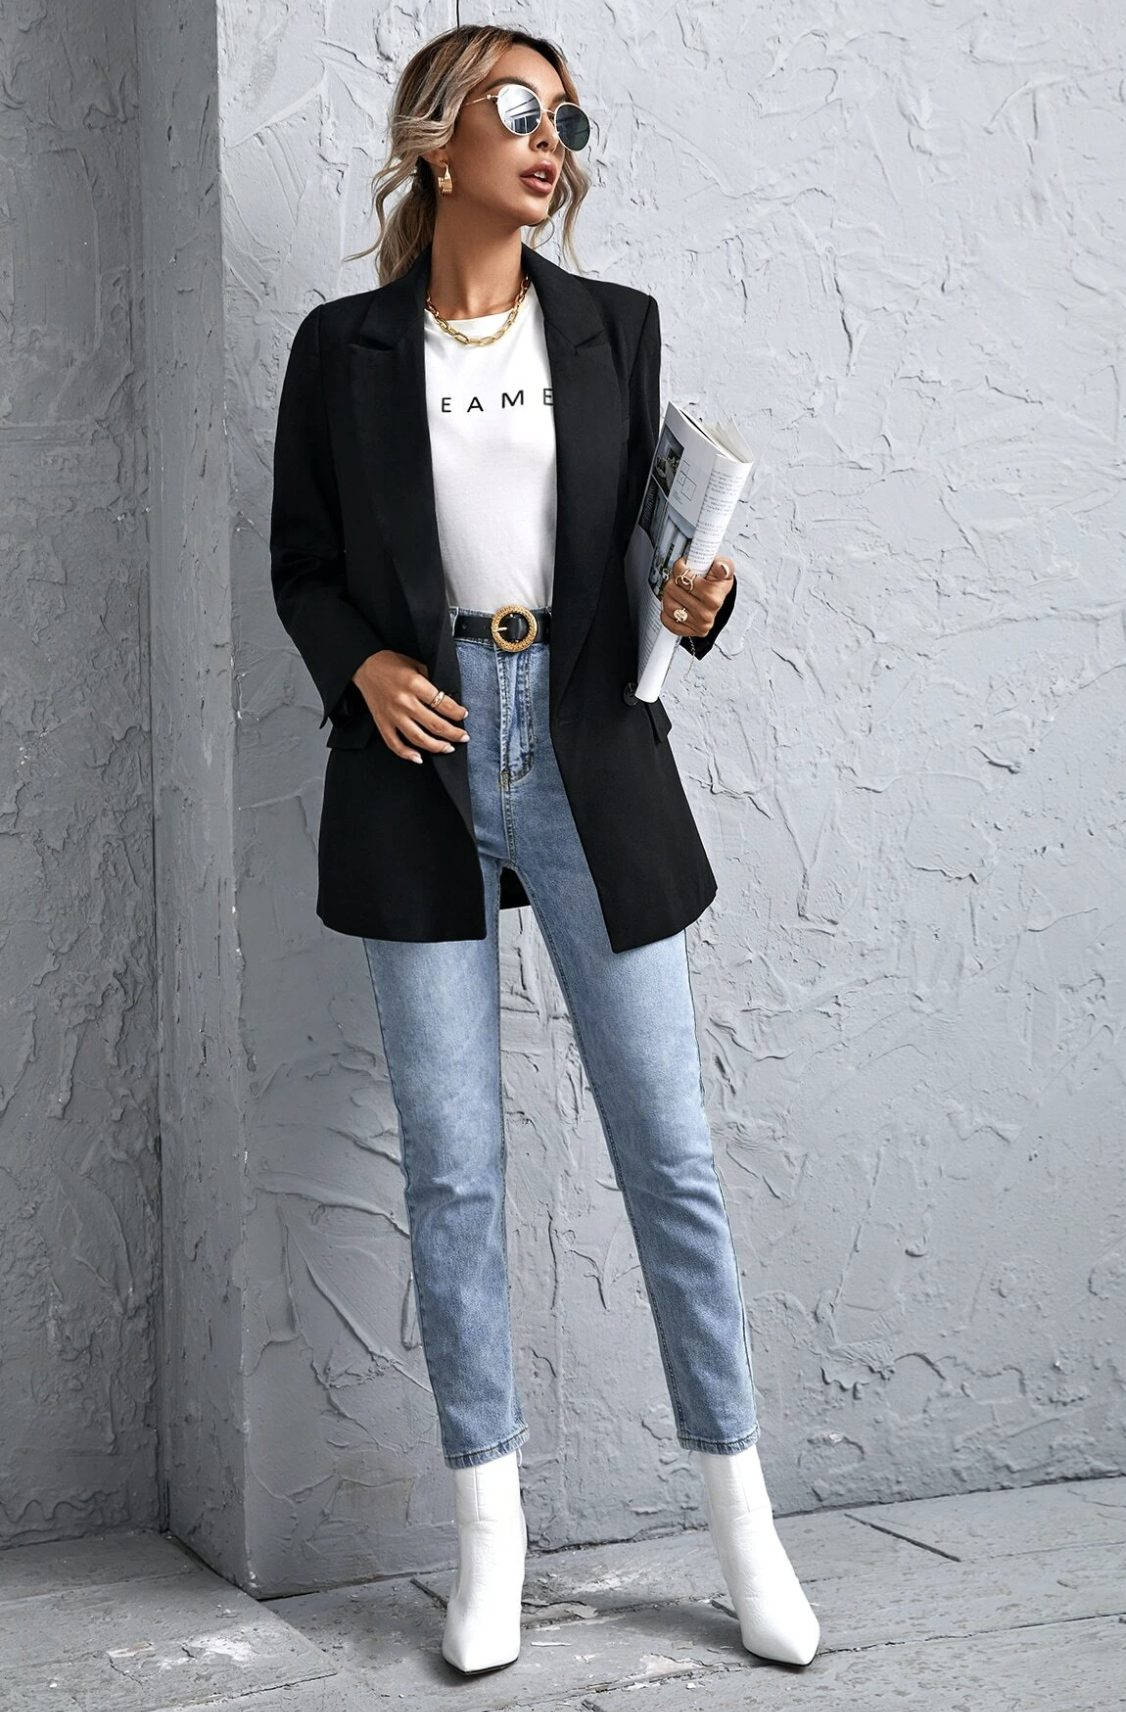 Casual black blazer with jeans and a t-shirt